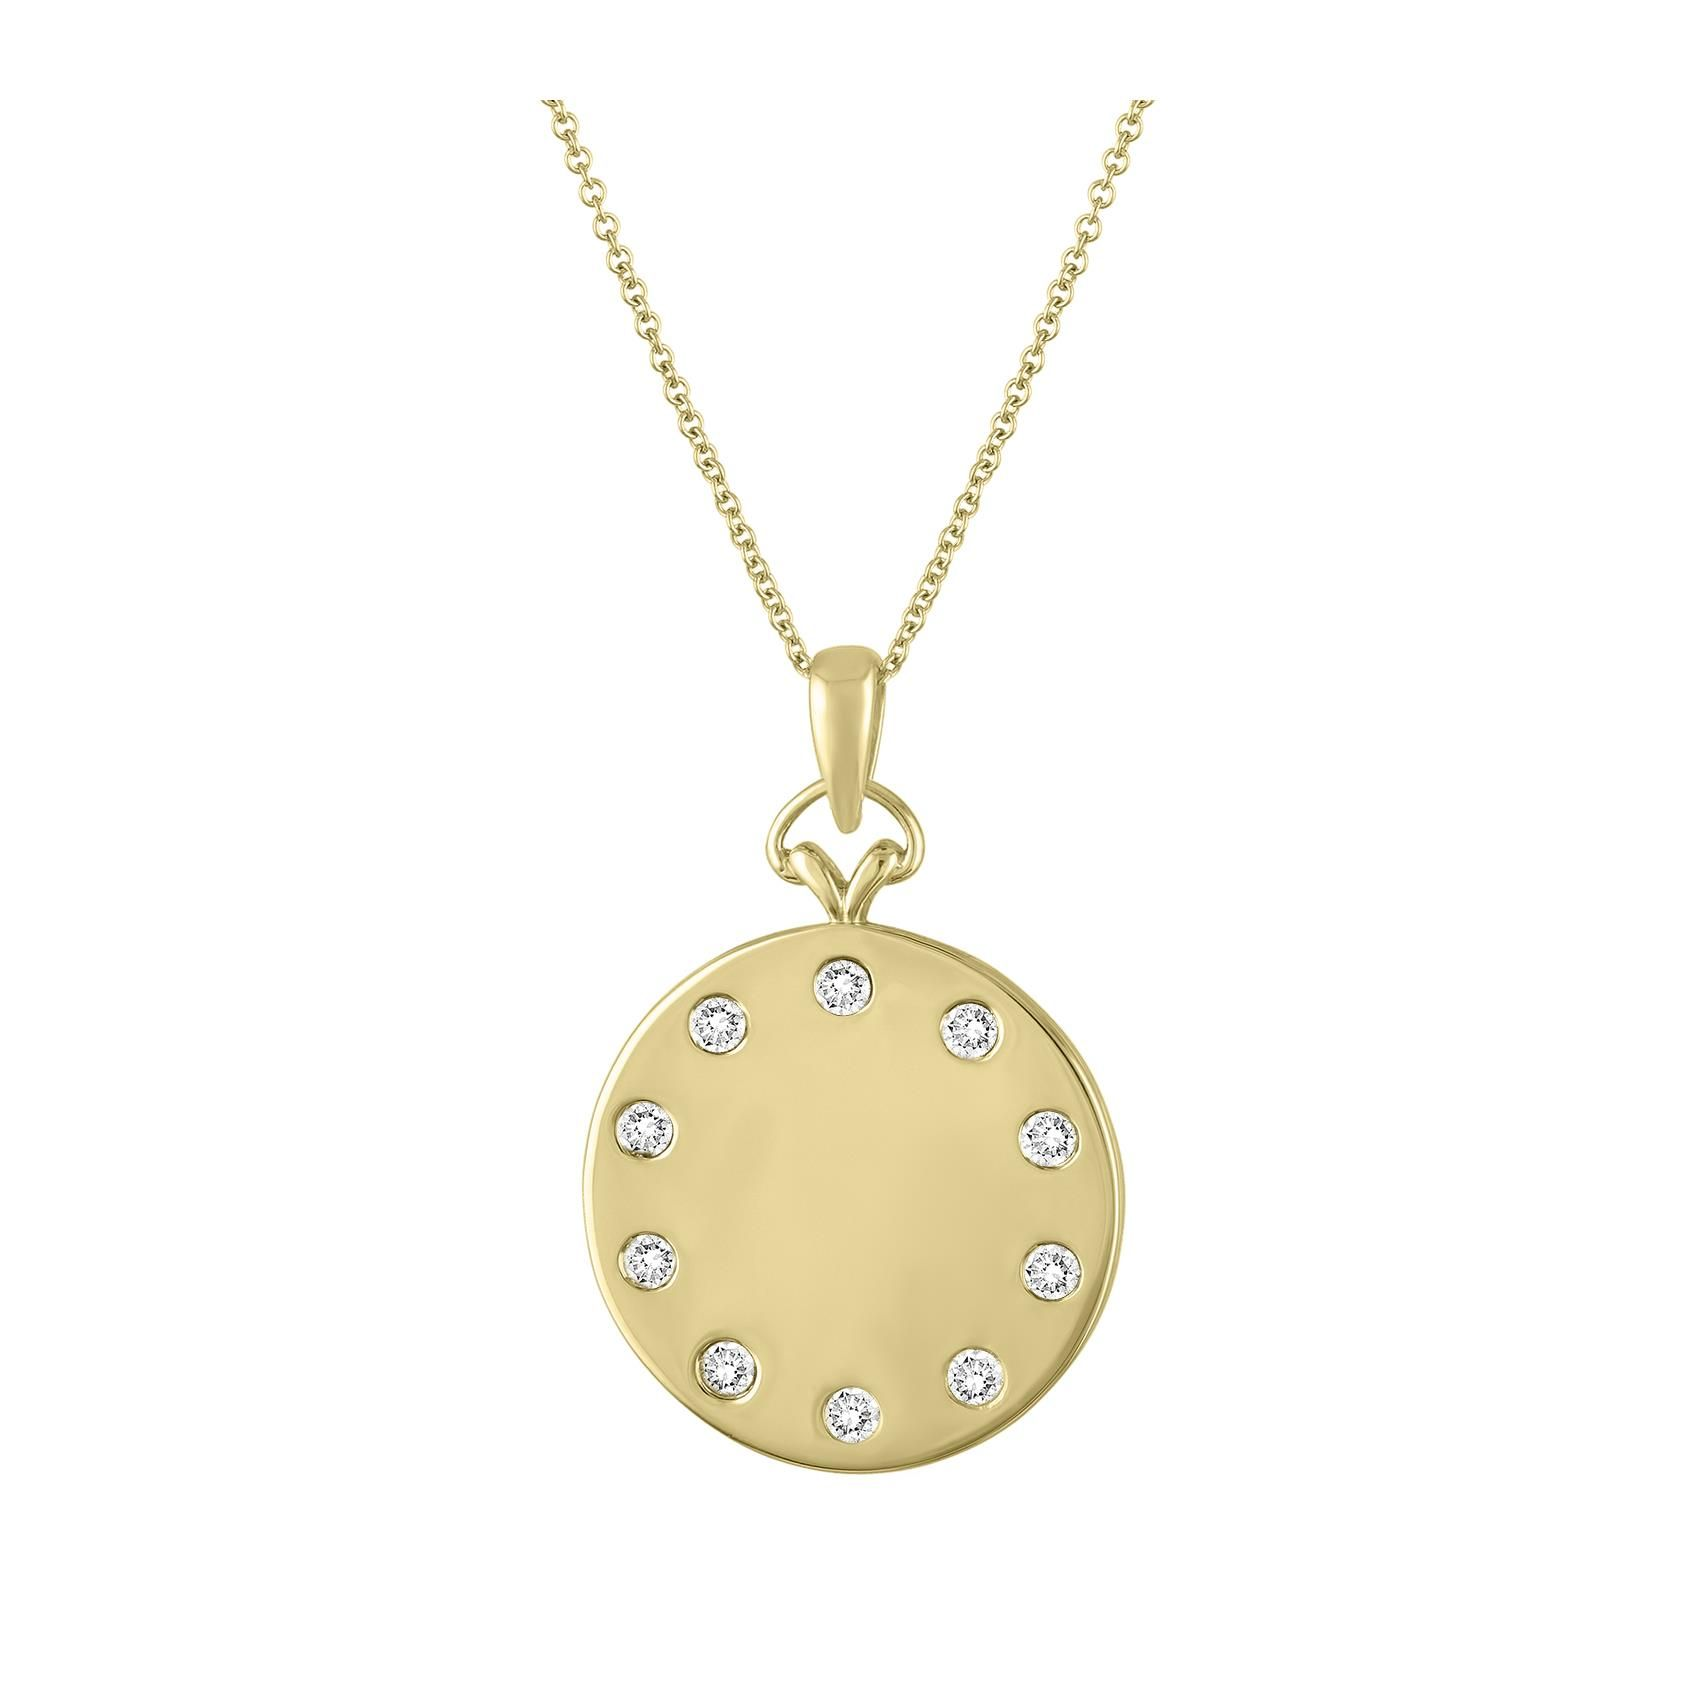 My Story 14k Yellow Gold Diamond Round Pendant Necklace